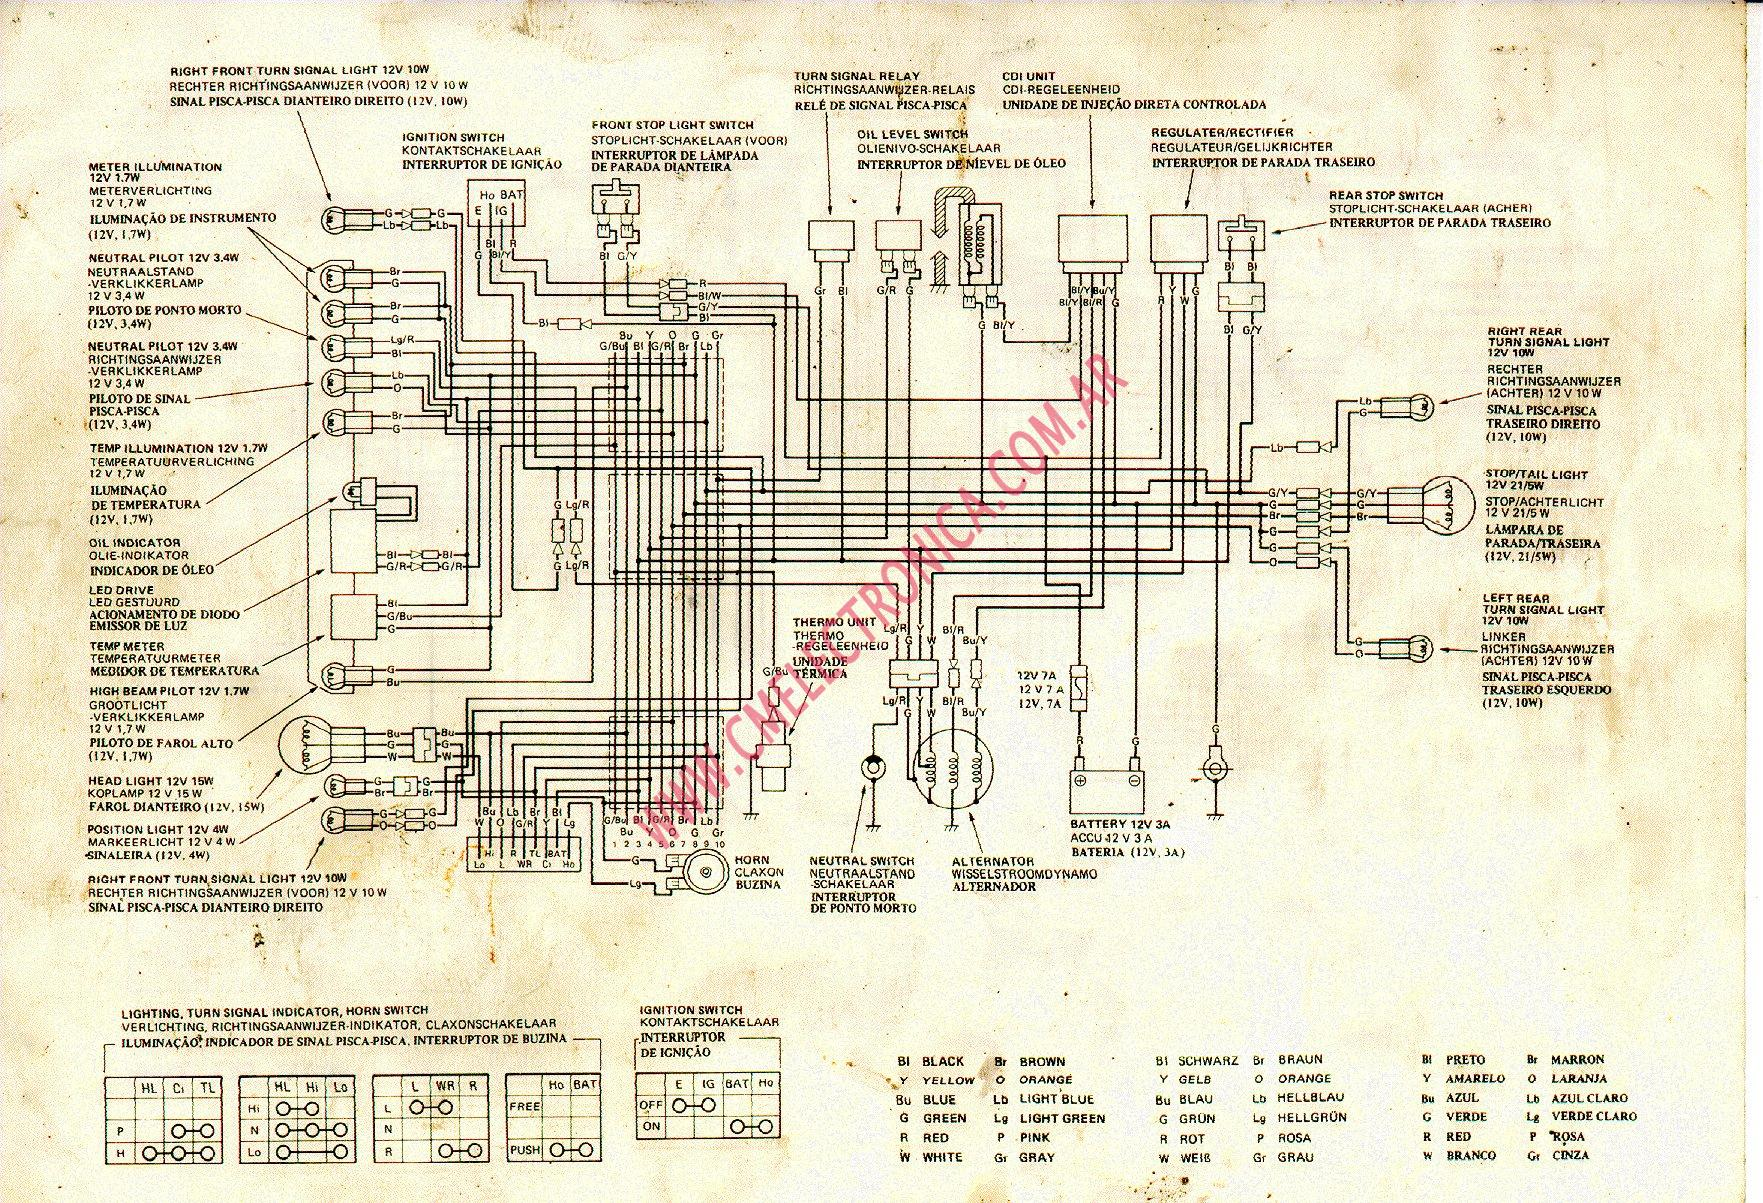 Honda Civic Vti Wiring Diagram : Honda civic wiring diagram get free image about